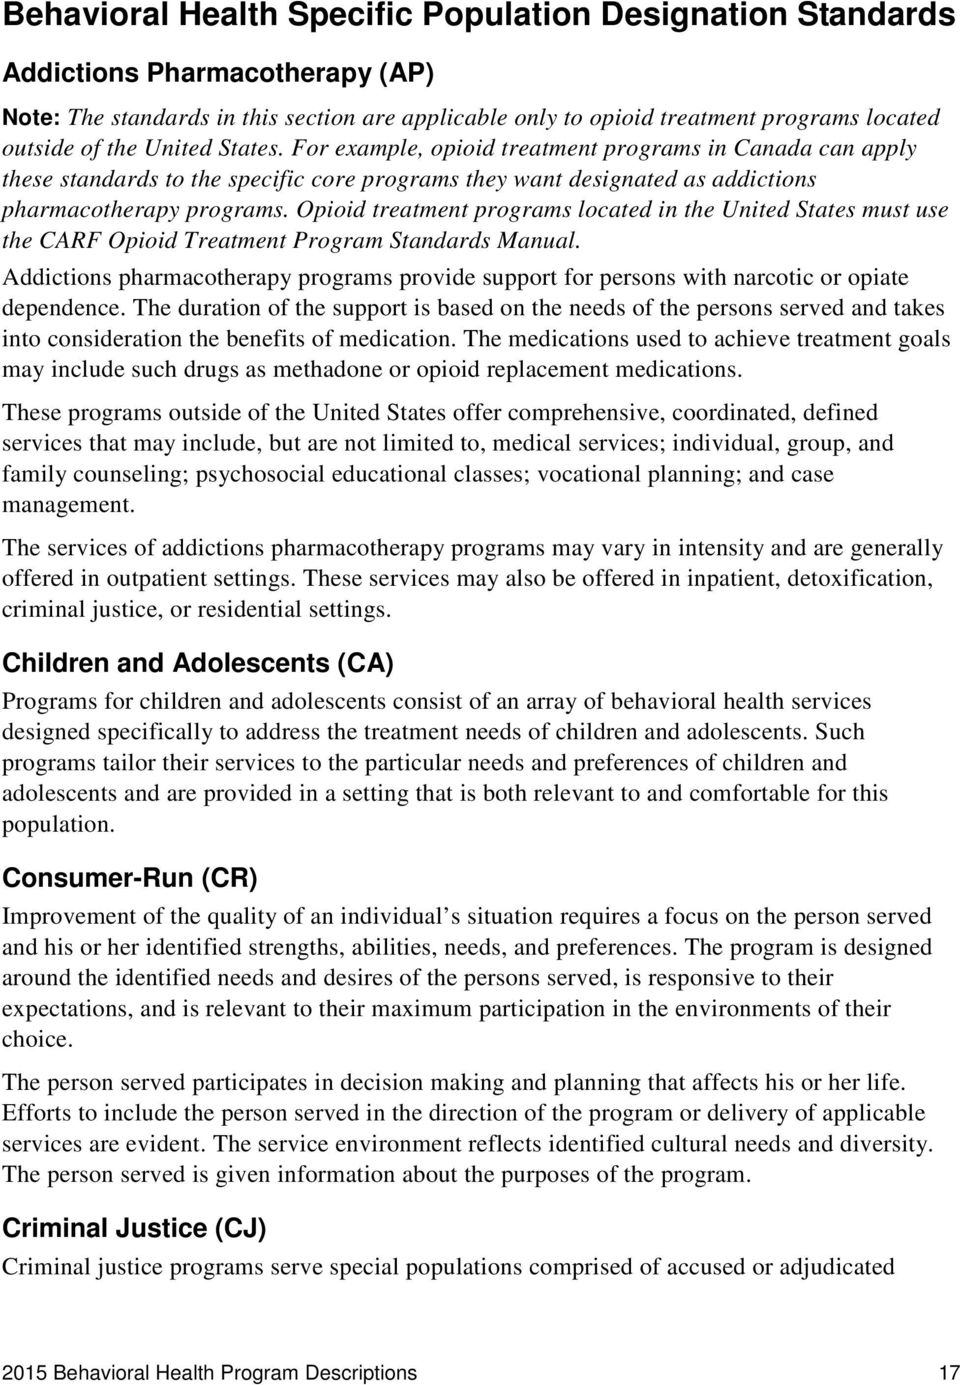 Opioid treatment programs located in the United States must use the CARF Opioid Treatment Program Standards Manual.